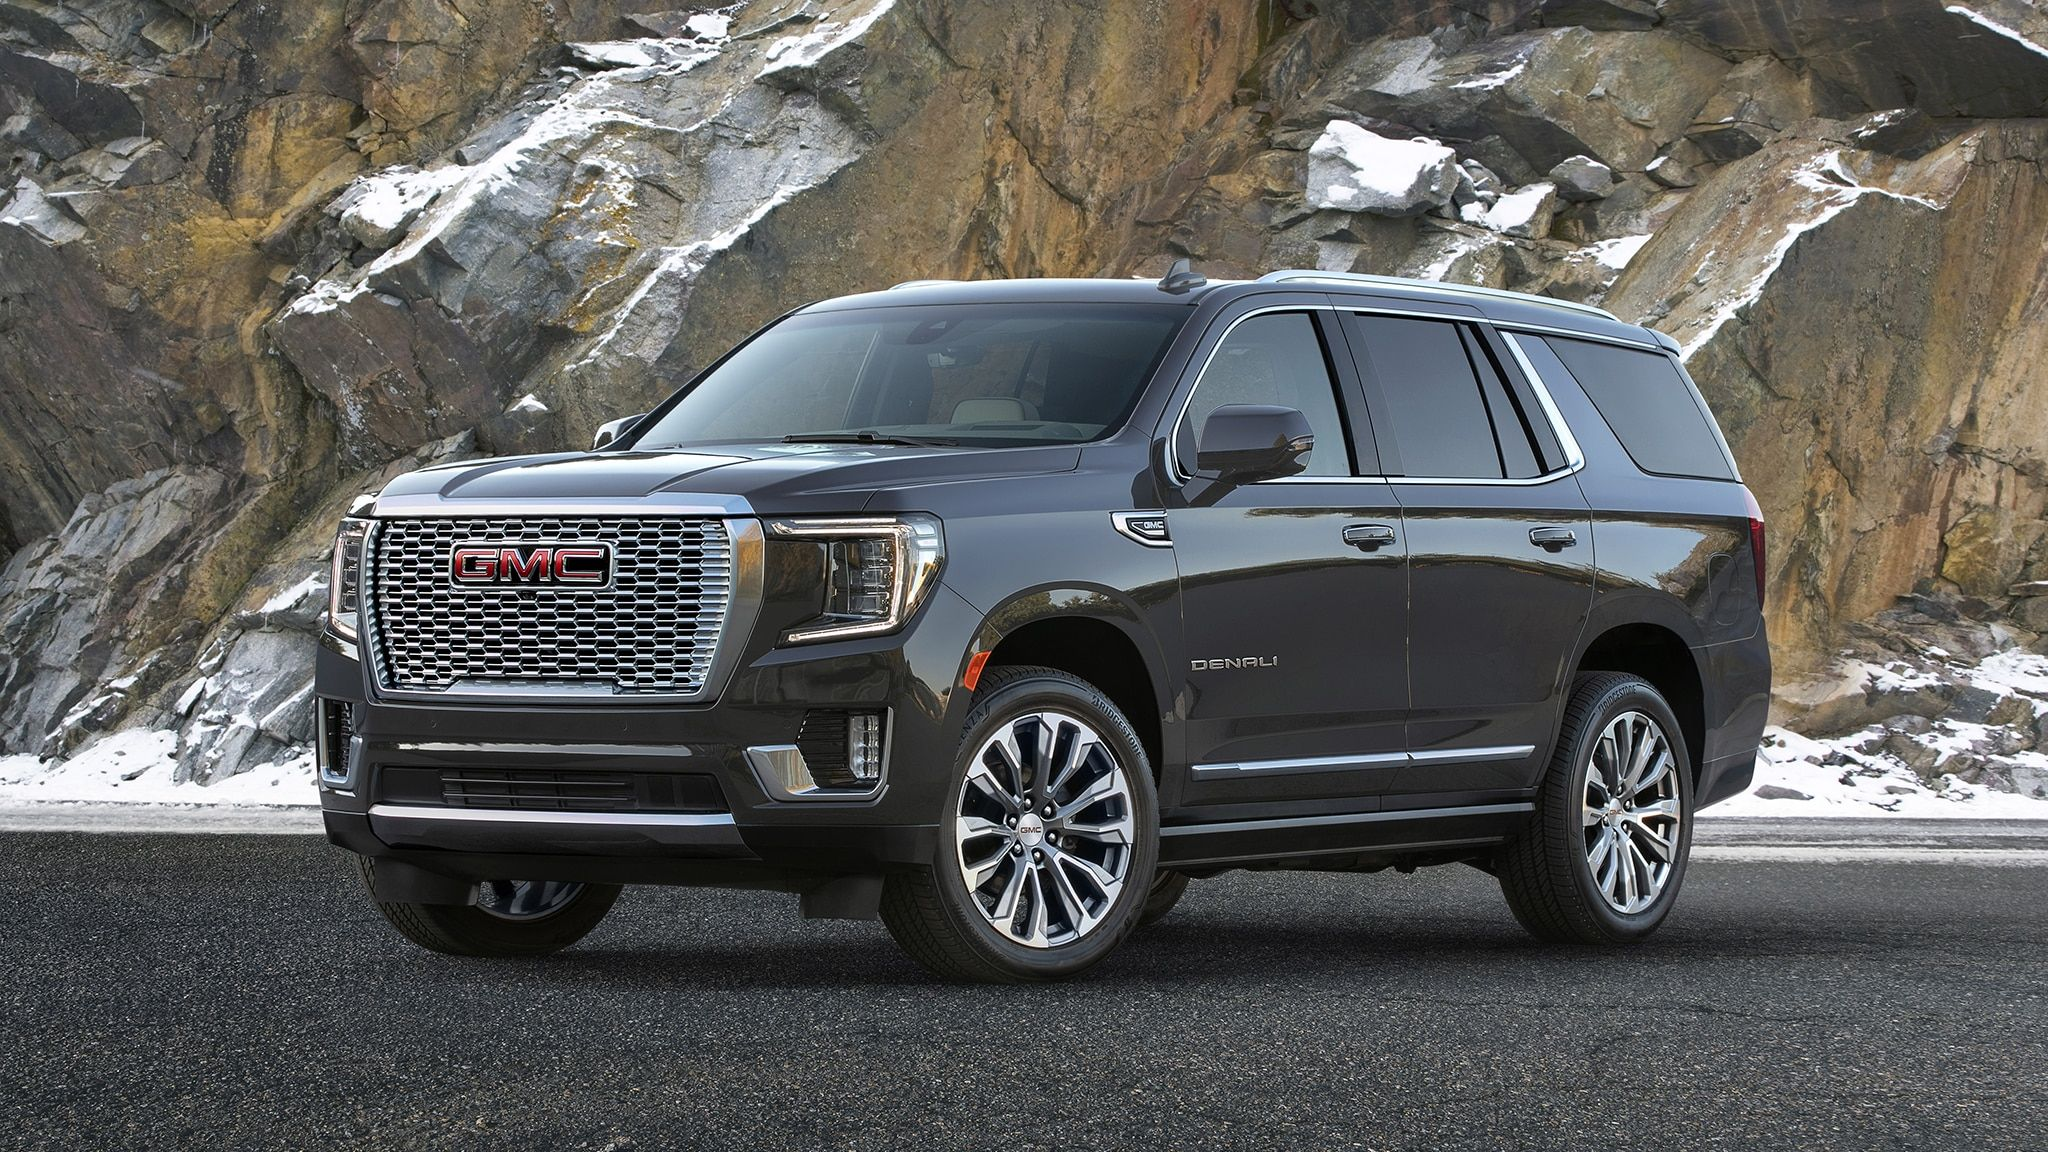 2021 Gmc Yukon Yukon Xl Move Further Away From Chevy Chevy